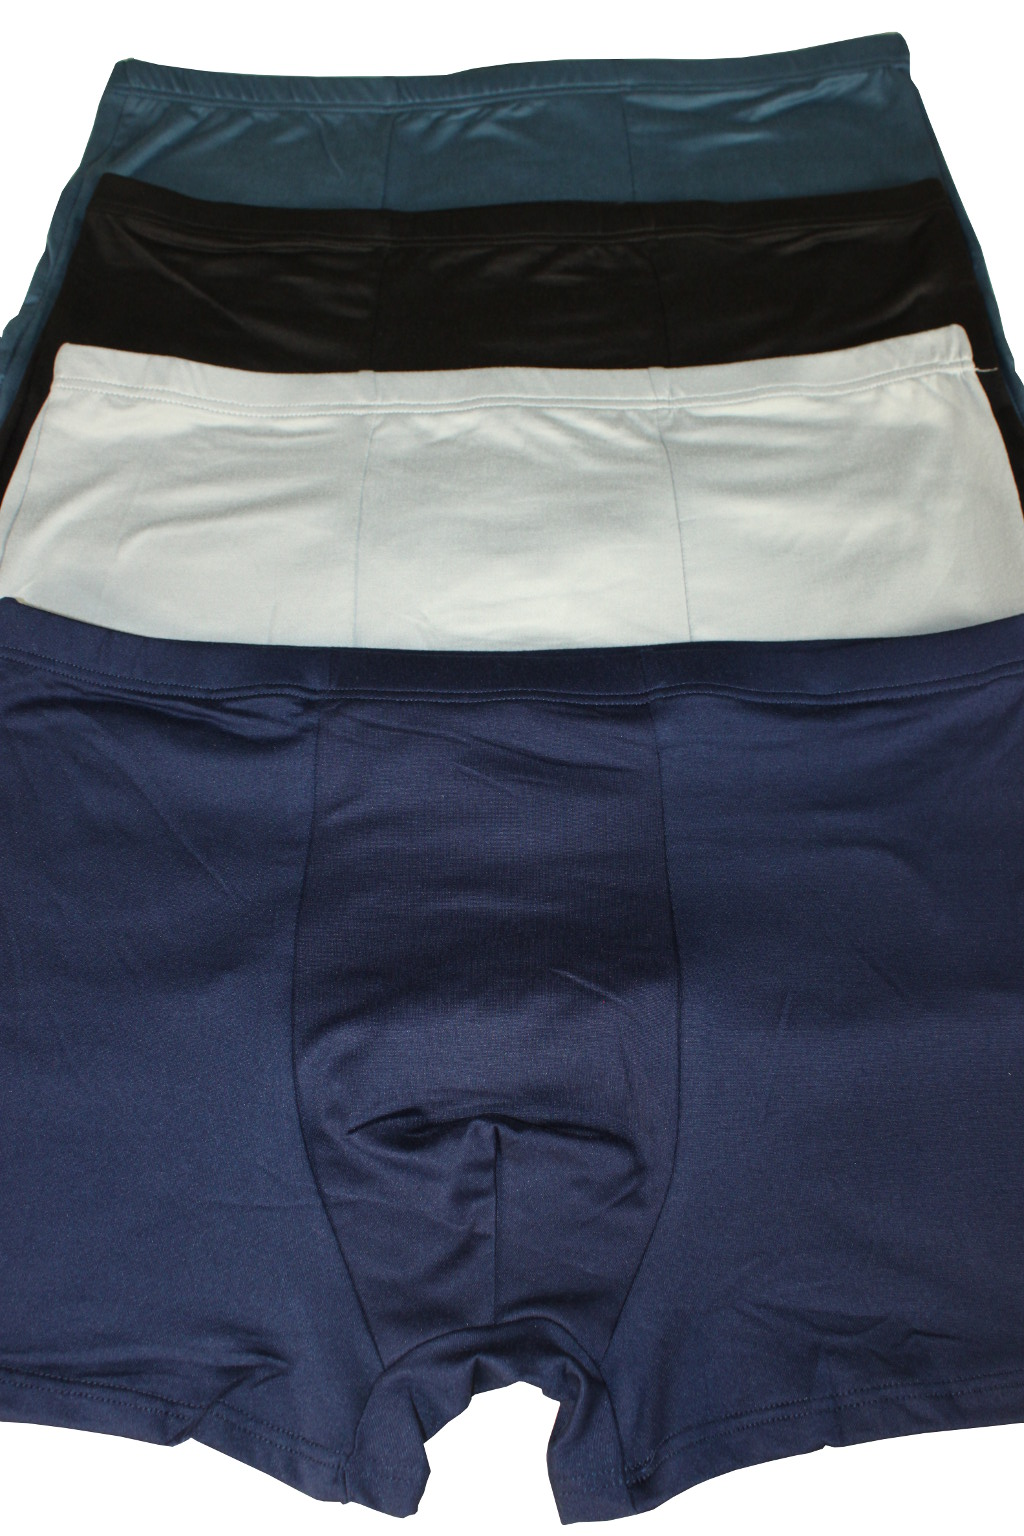 Gentleman Bambus Boxer 3Pack XXL MIX